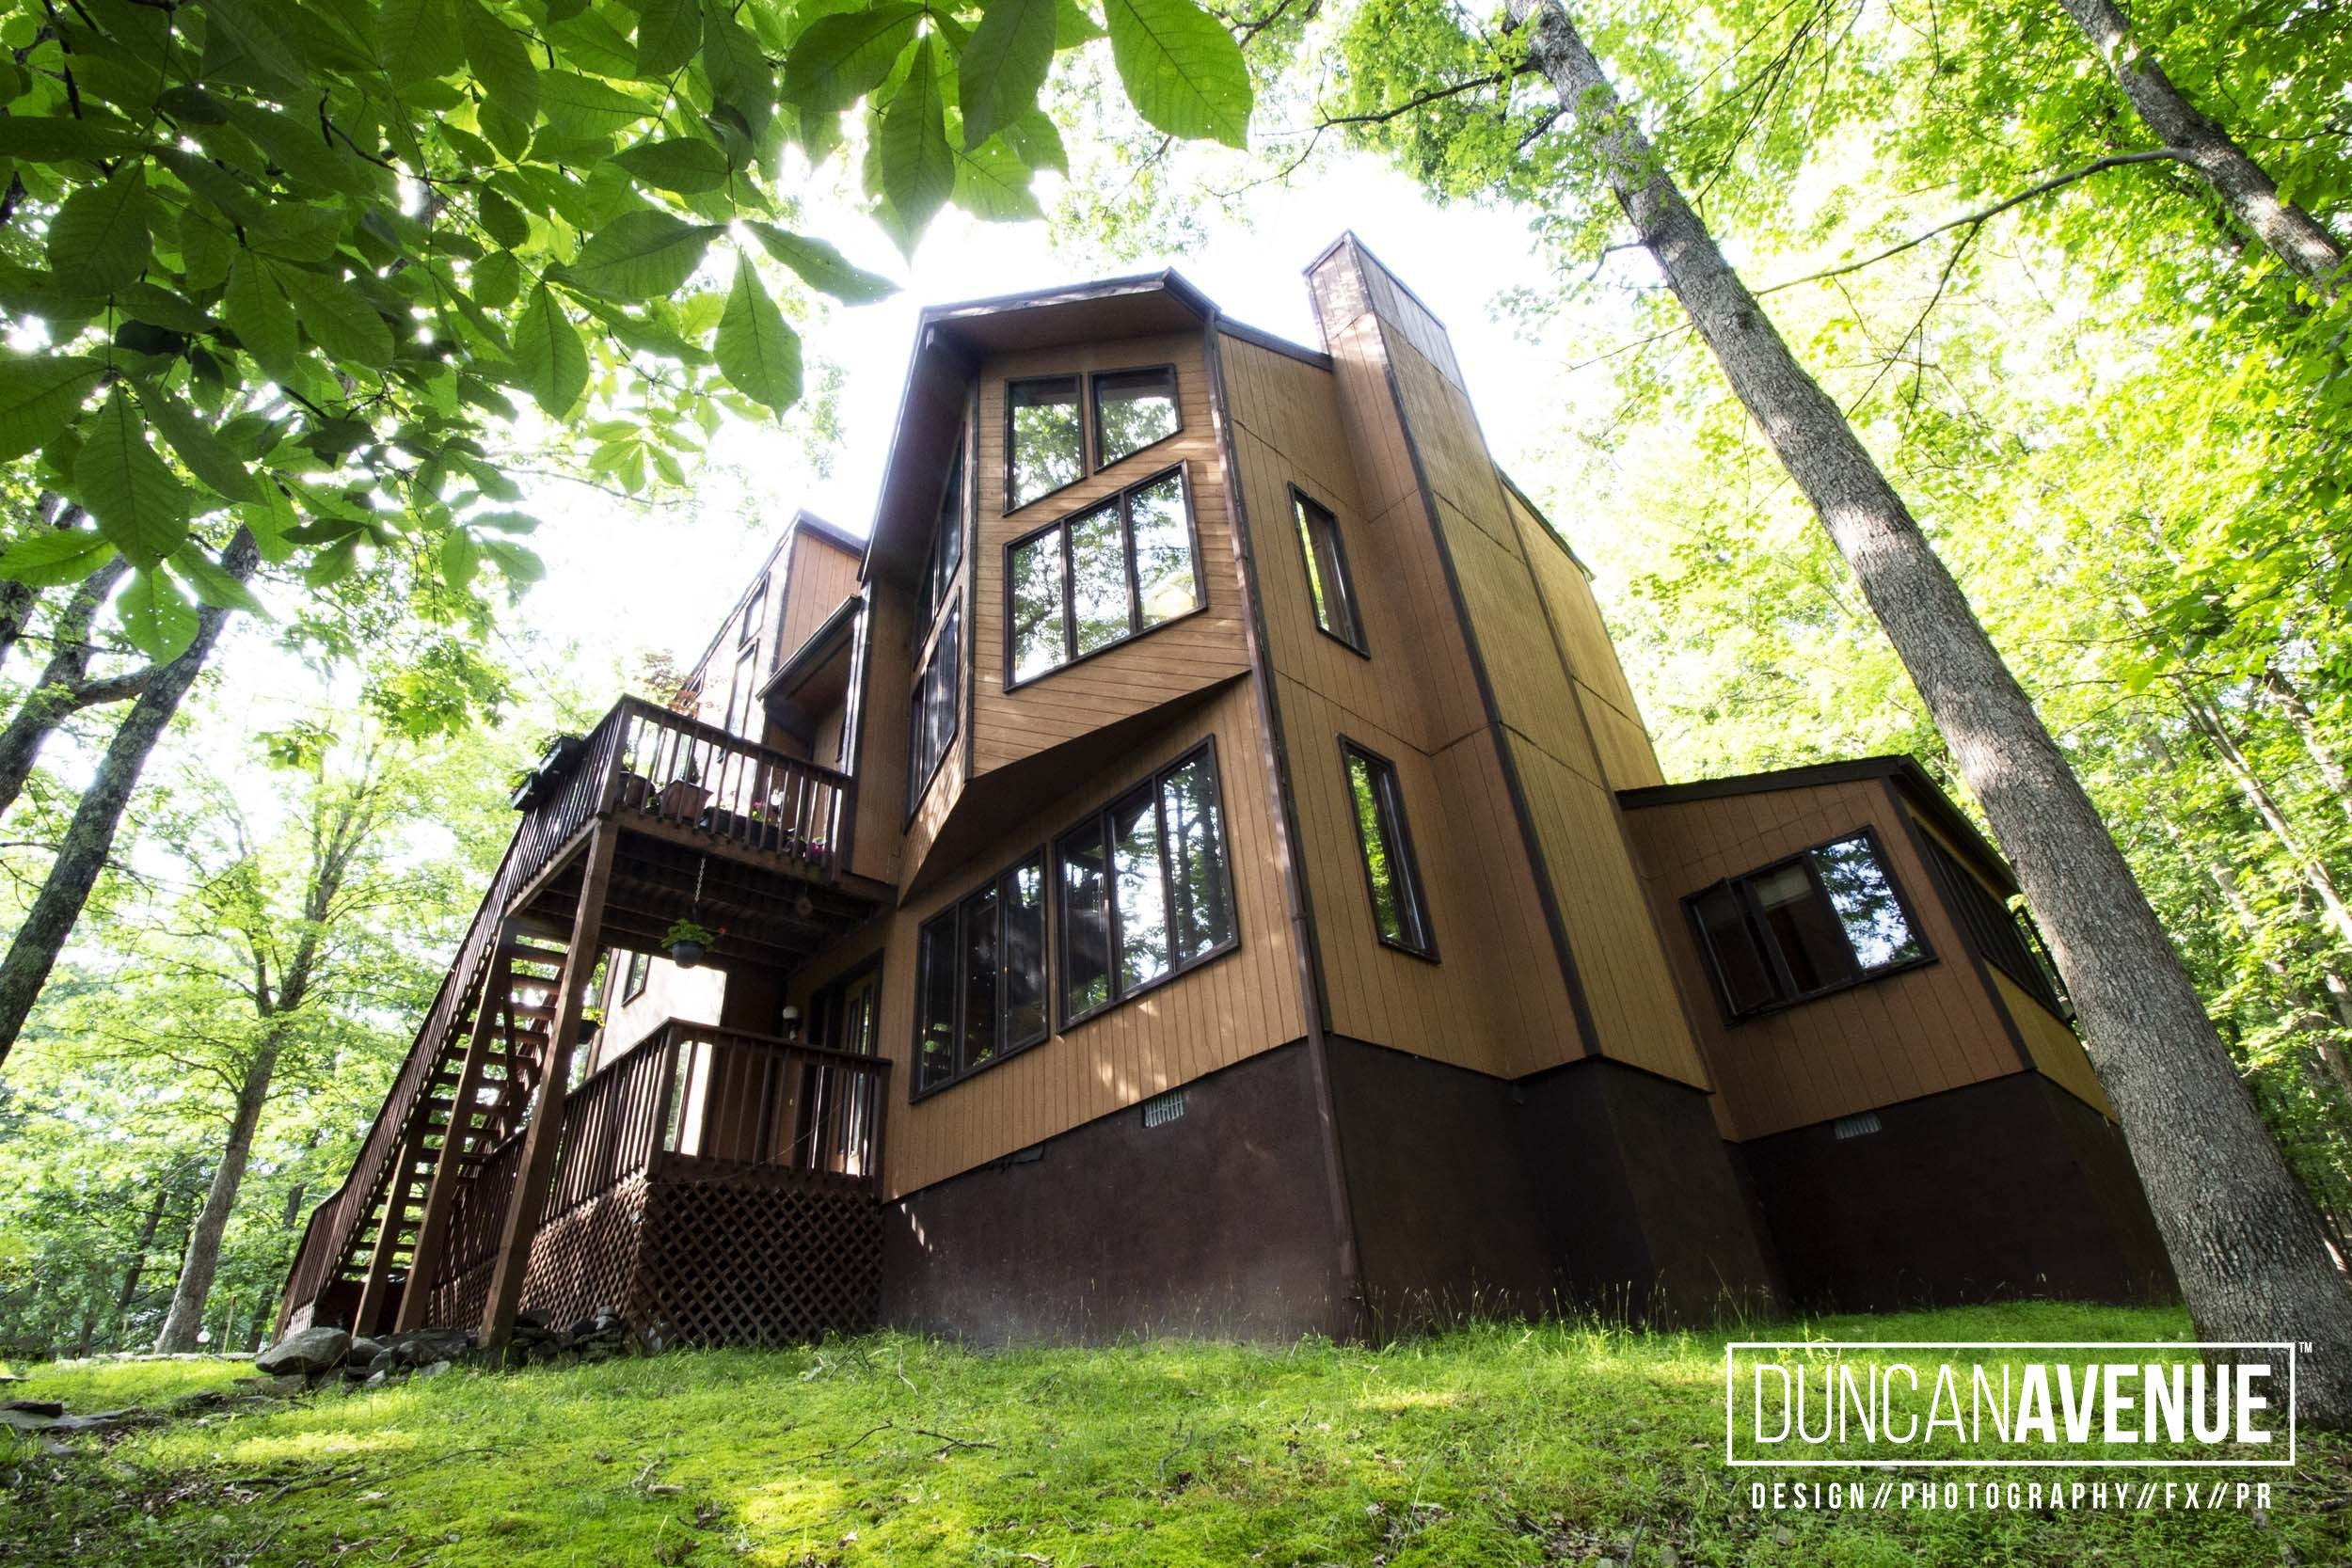 Big House on the Hill - Poconos, PA - Real Estate Photography Project by Duncan Avenue